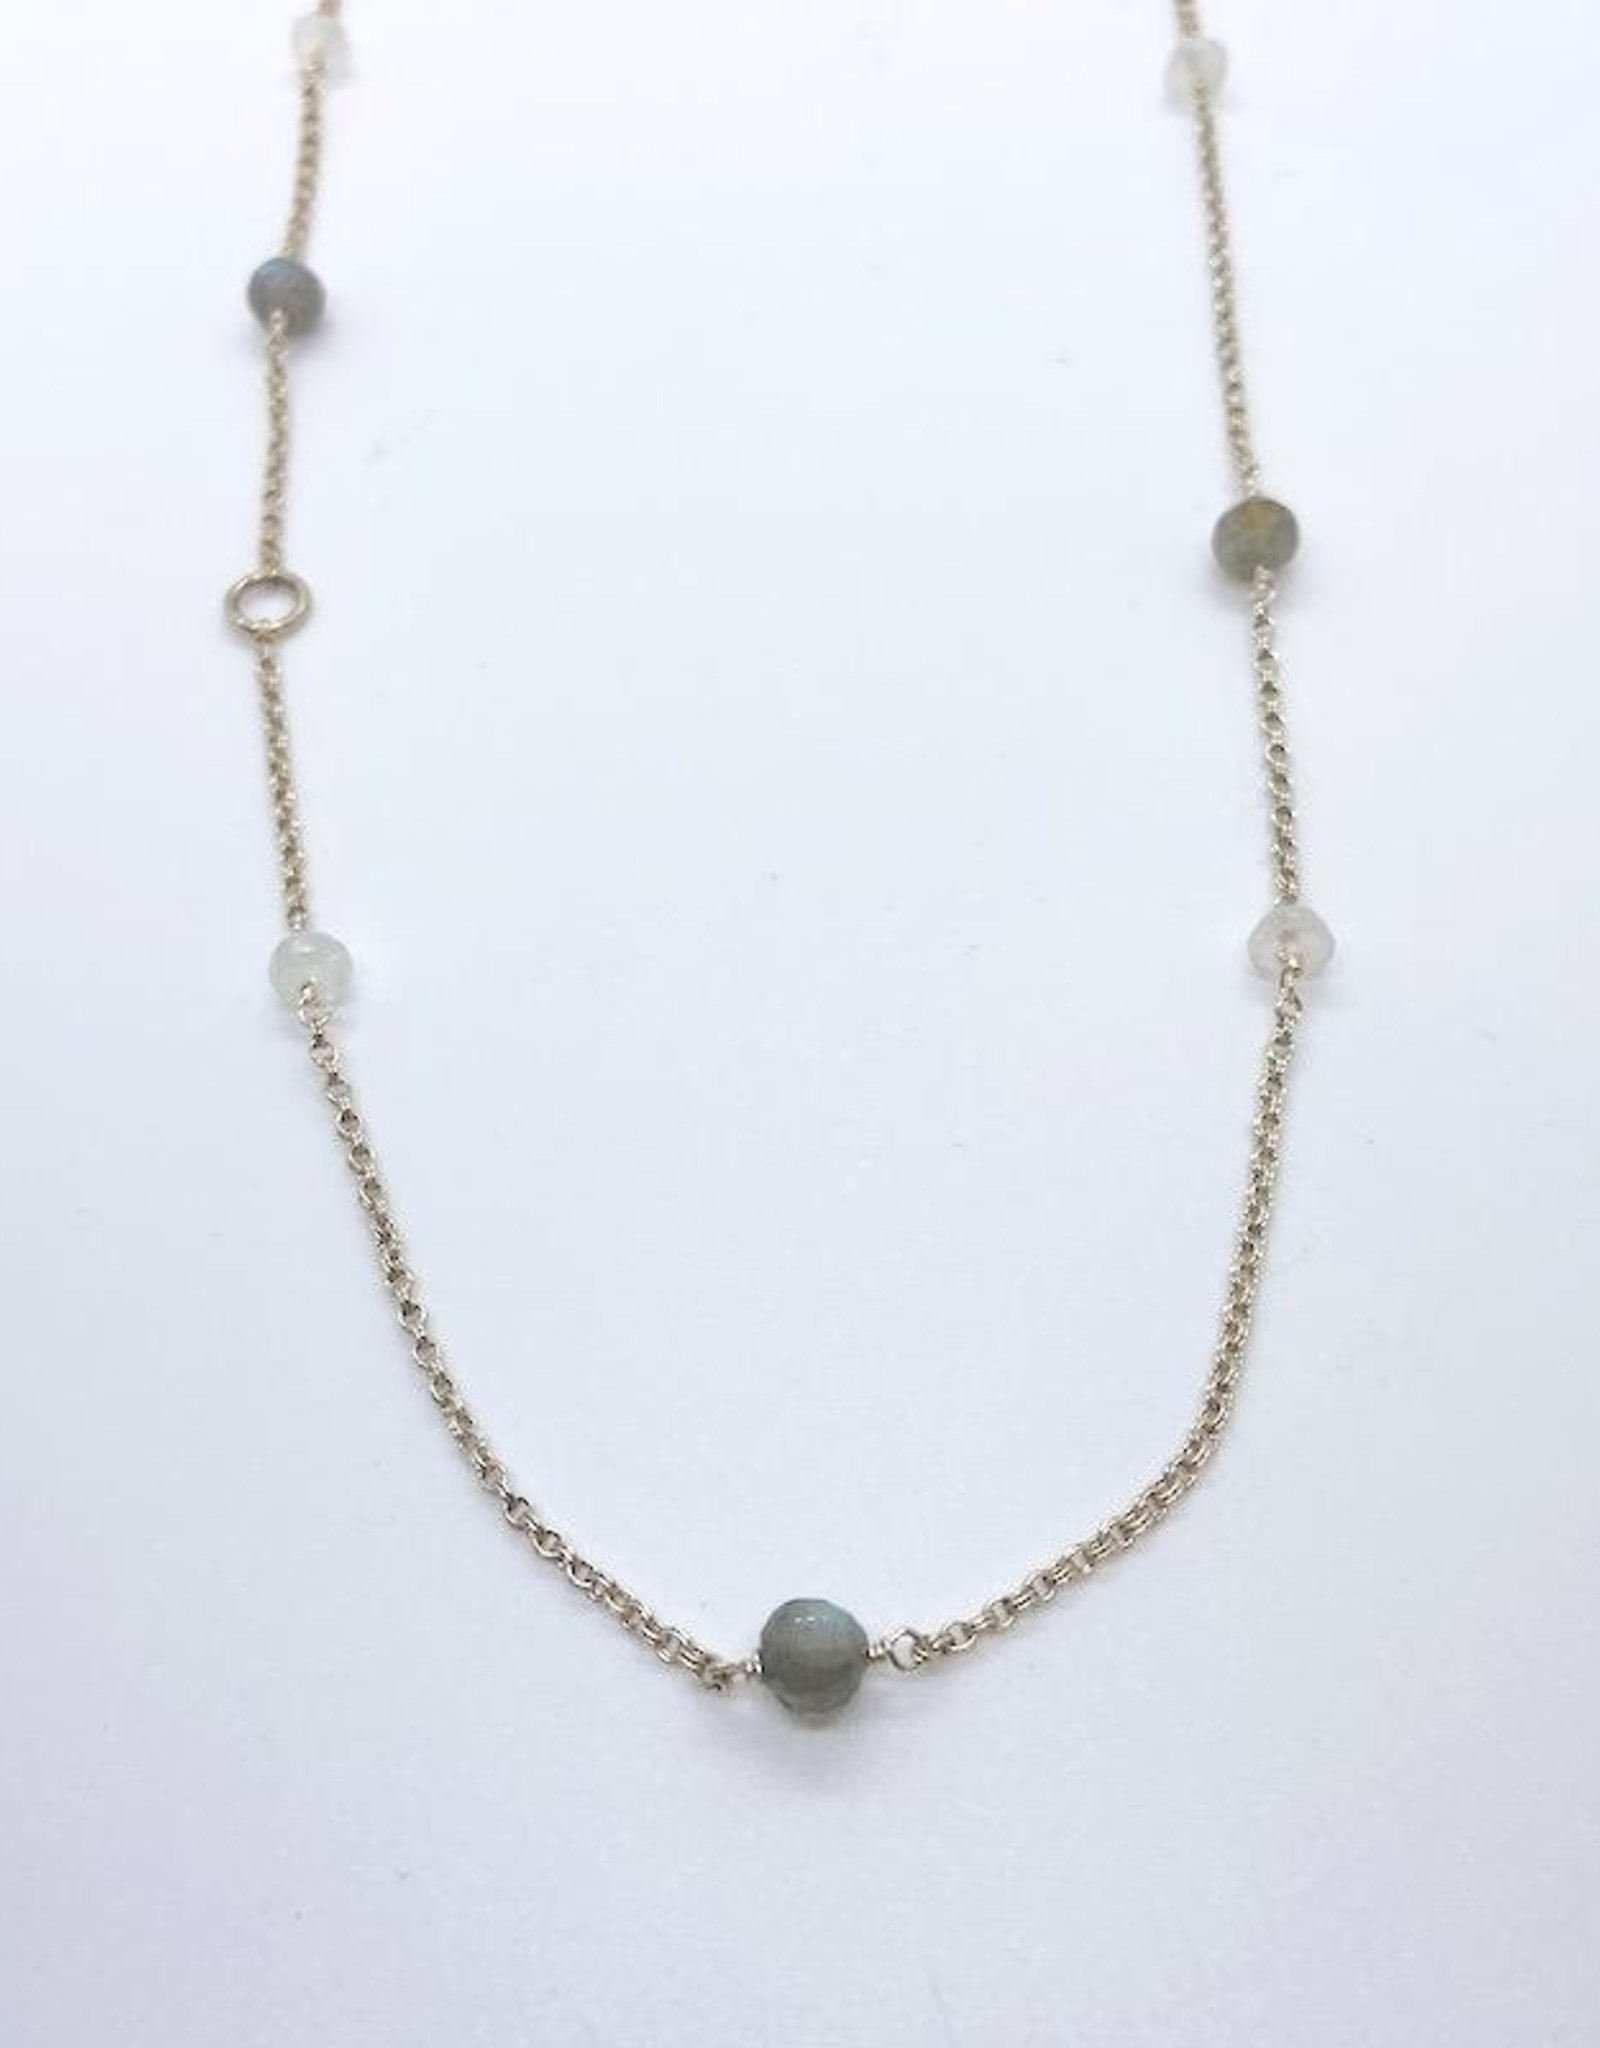 Handmade Silver Necklace with alternating rainbow moonstone, labradorite, 1 ring, 20""